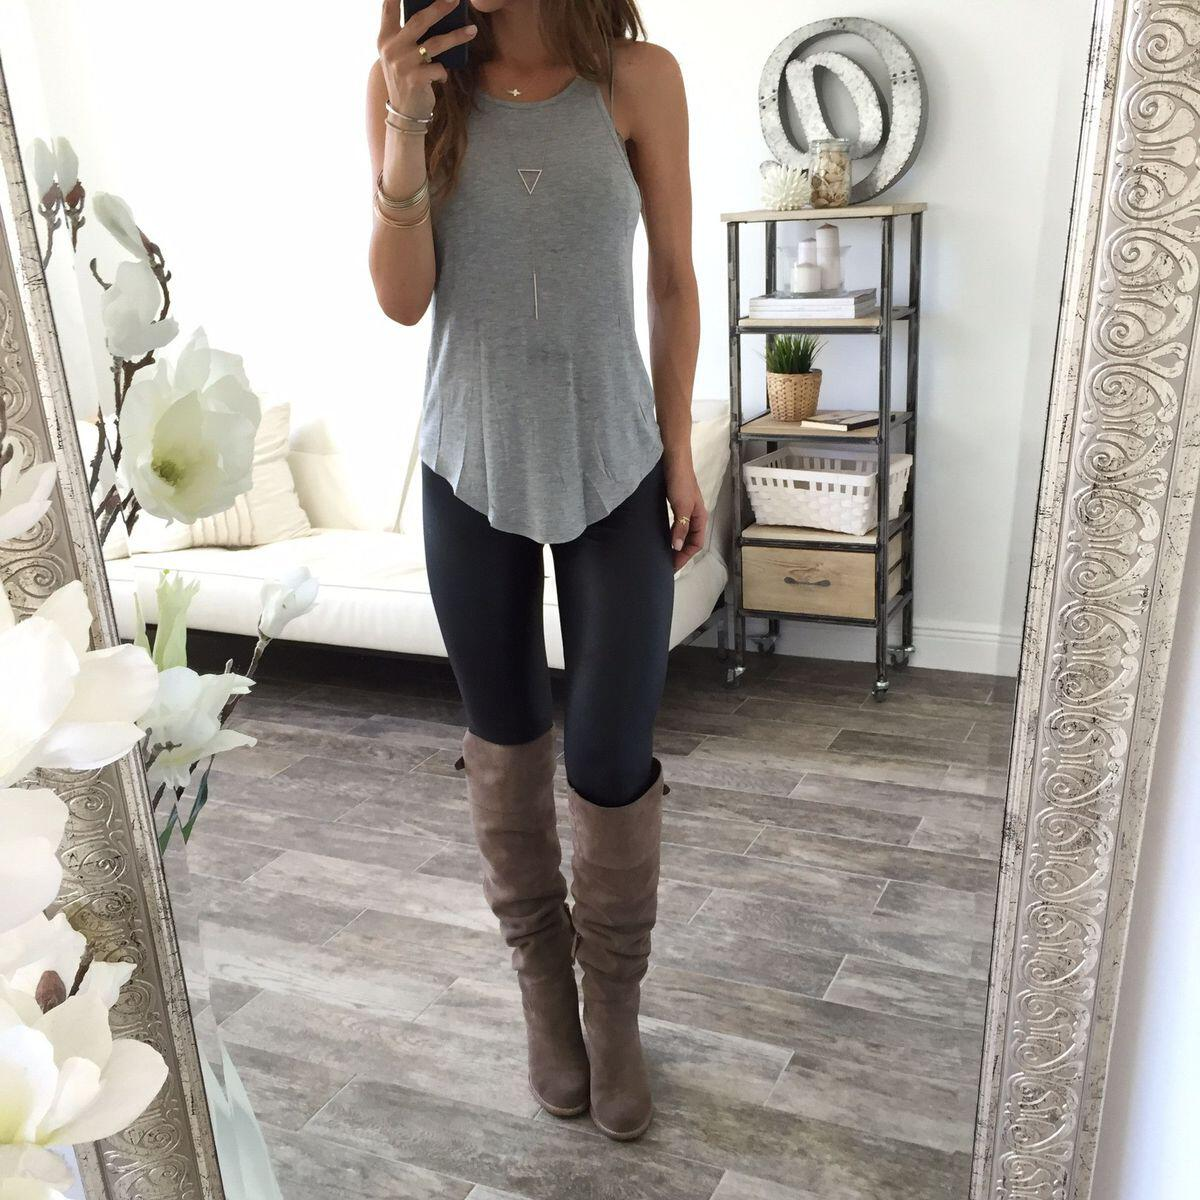 leggings spring outfit 5 best outfits 12 - 14 casual spring outfits with leggings that you can wear every day